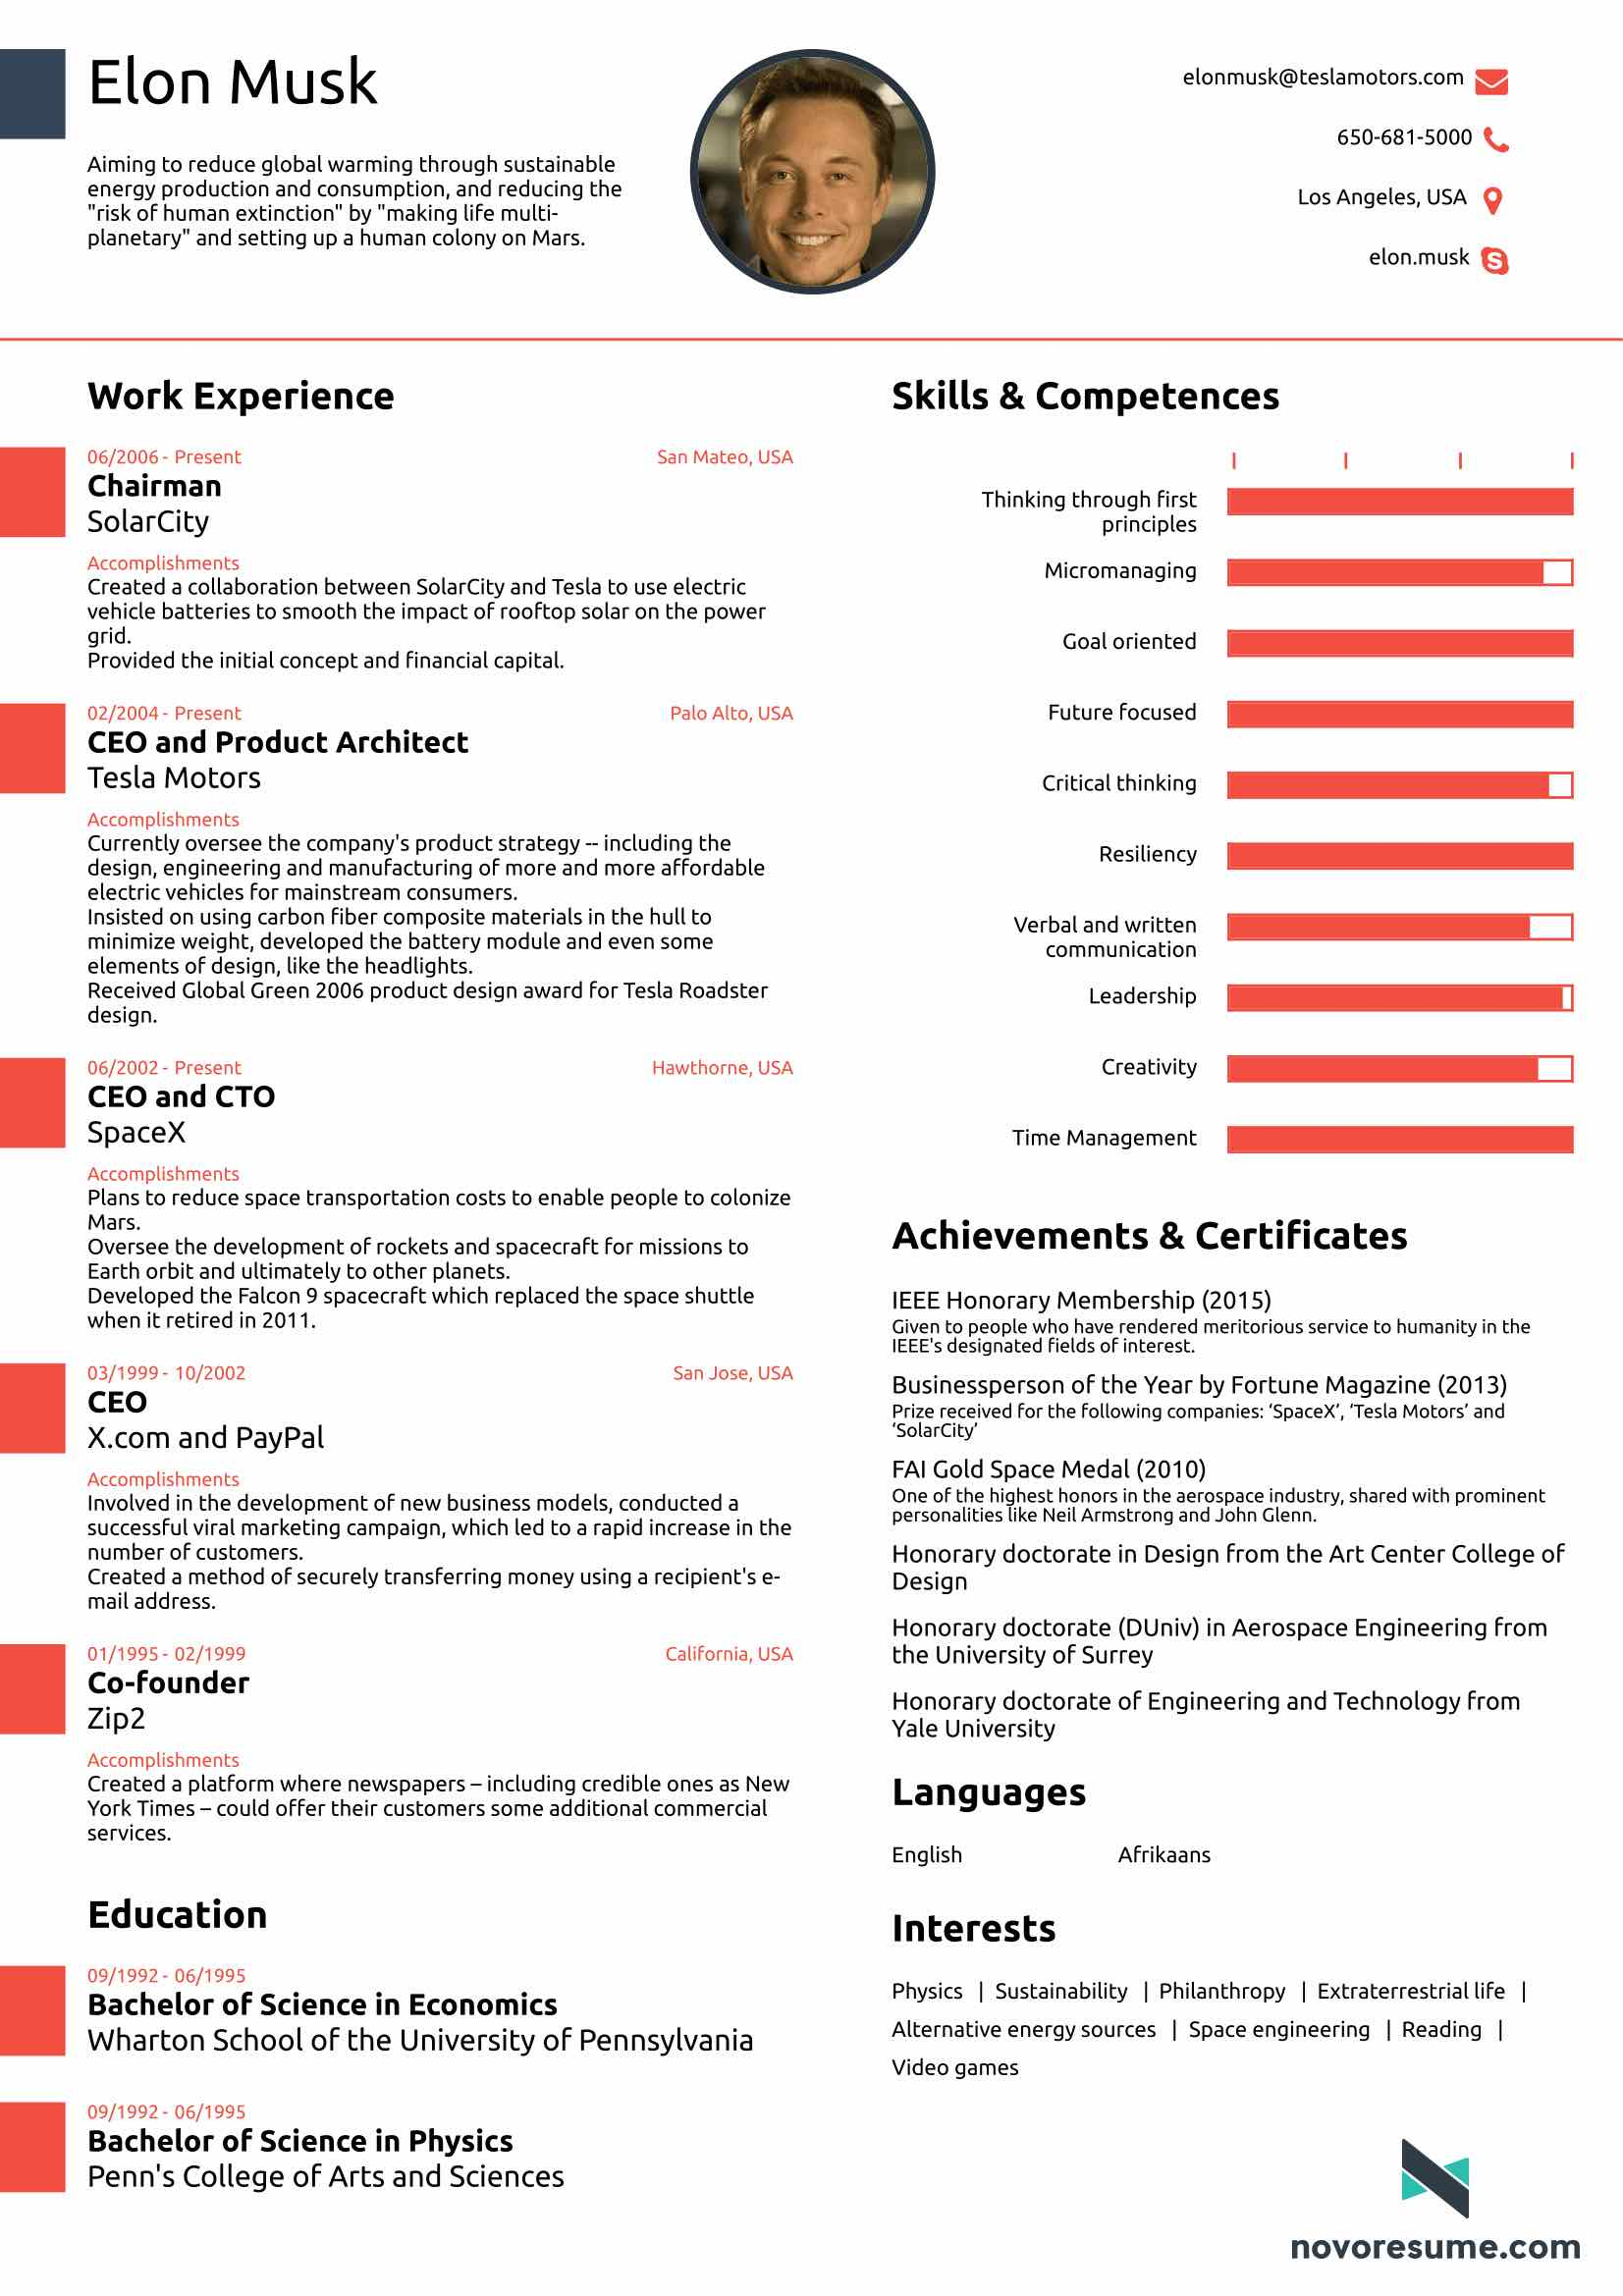 Resume Pages This Resume For Elon Musk Proves You Never Need To Use